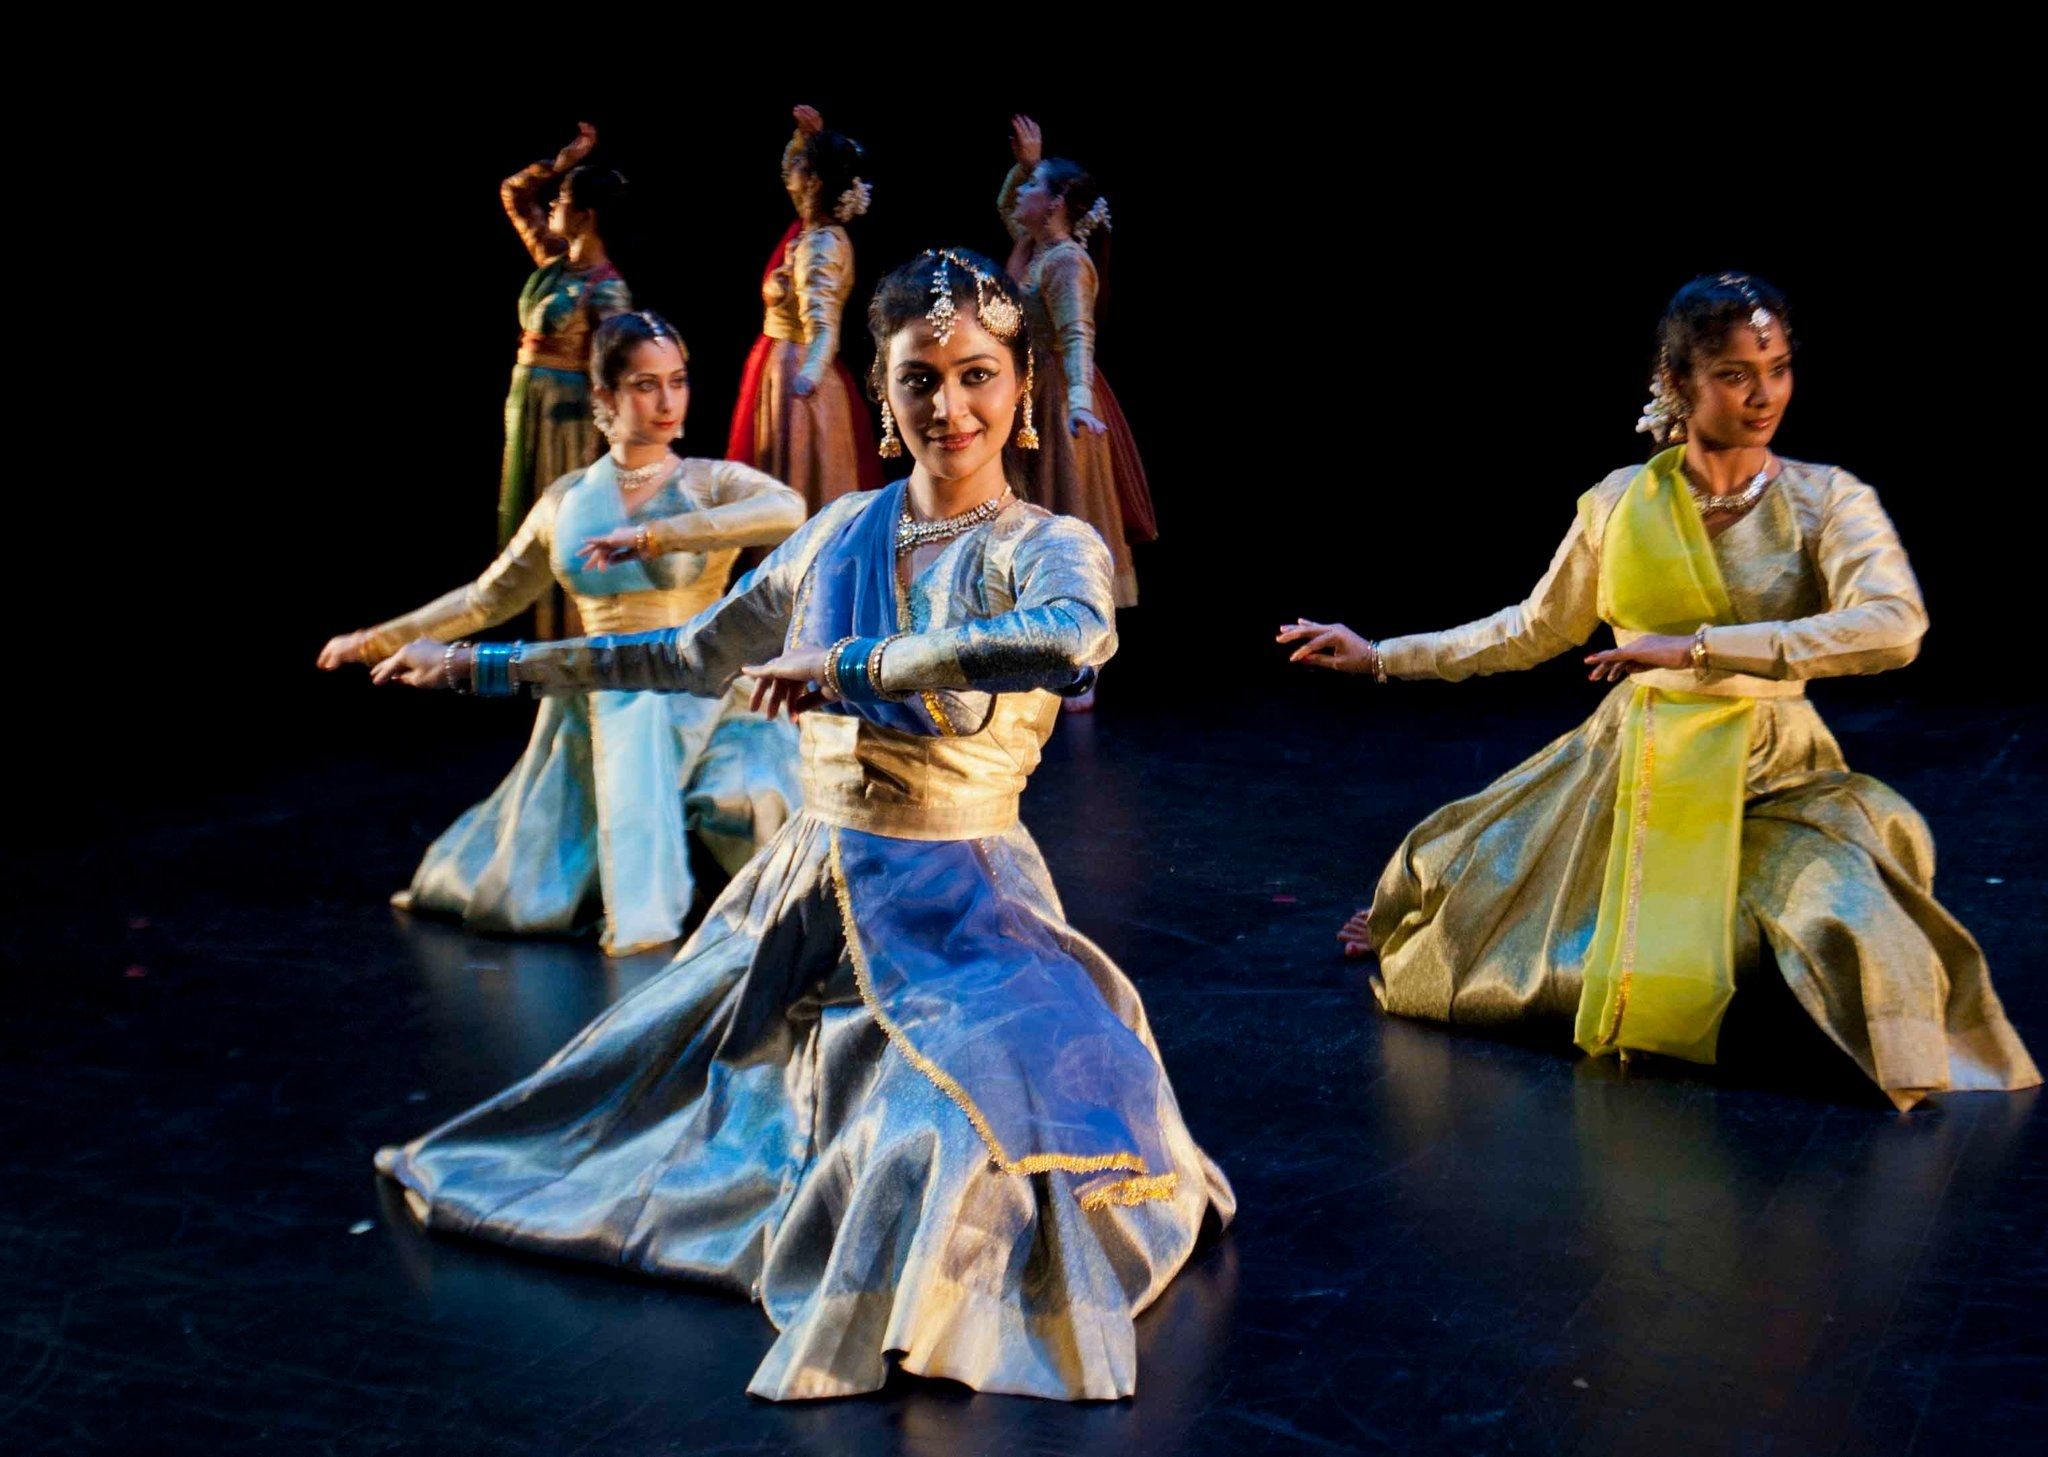 Dance Jewels From Lucknow @ Baruch Performing Arts Center, Photo © Michael Palma